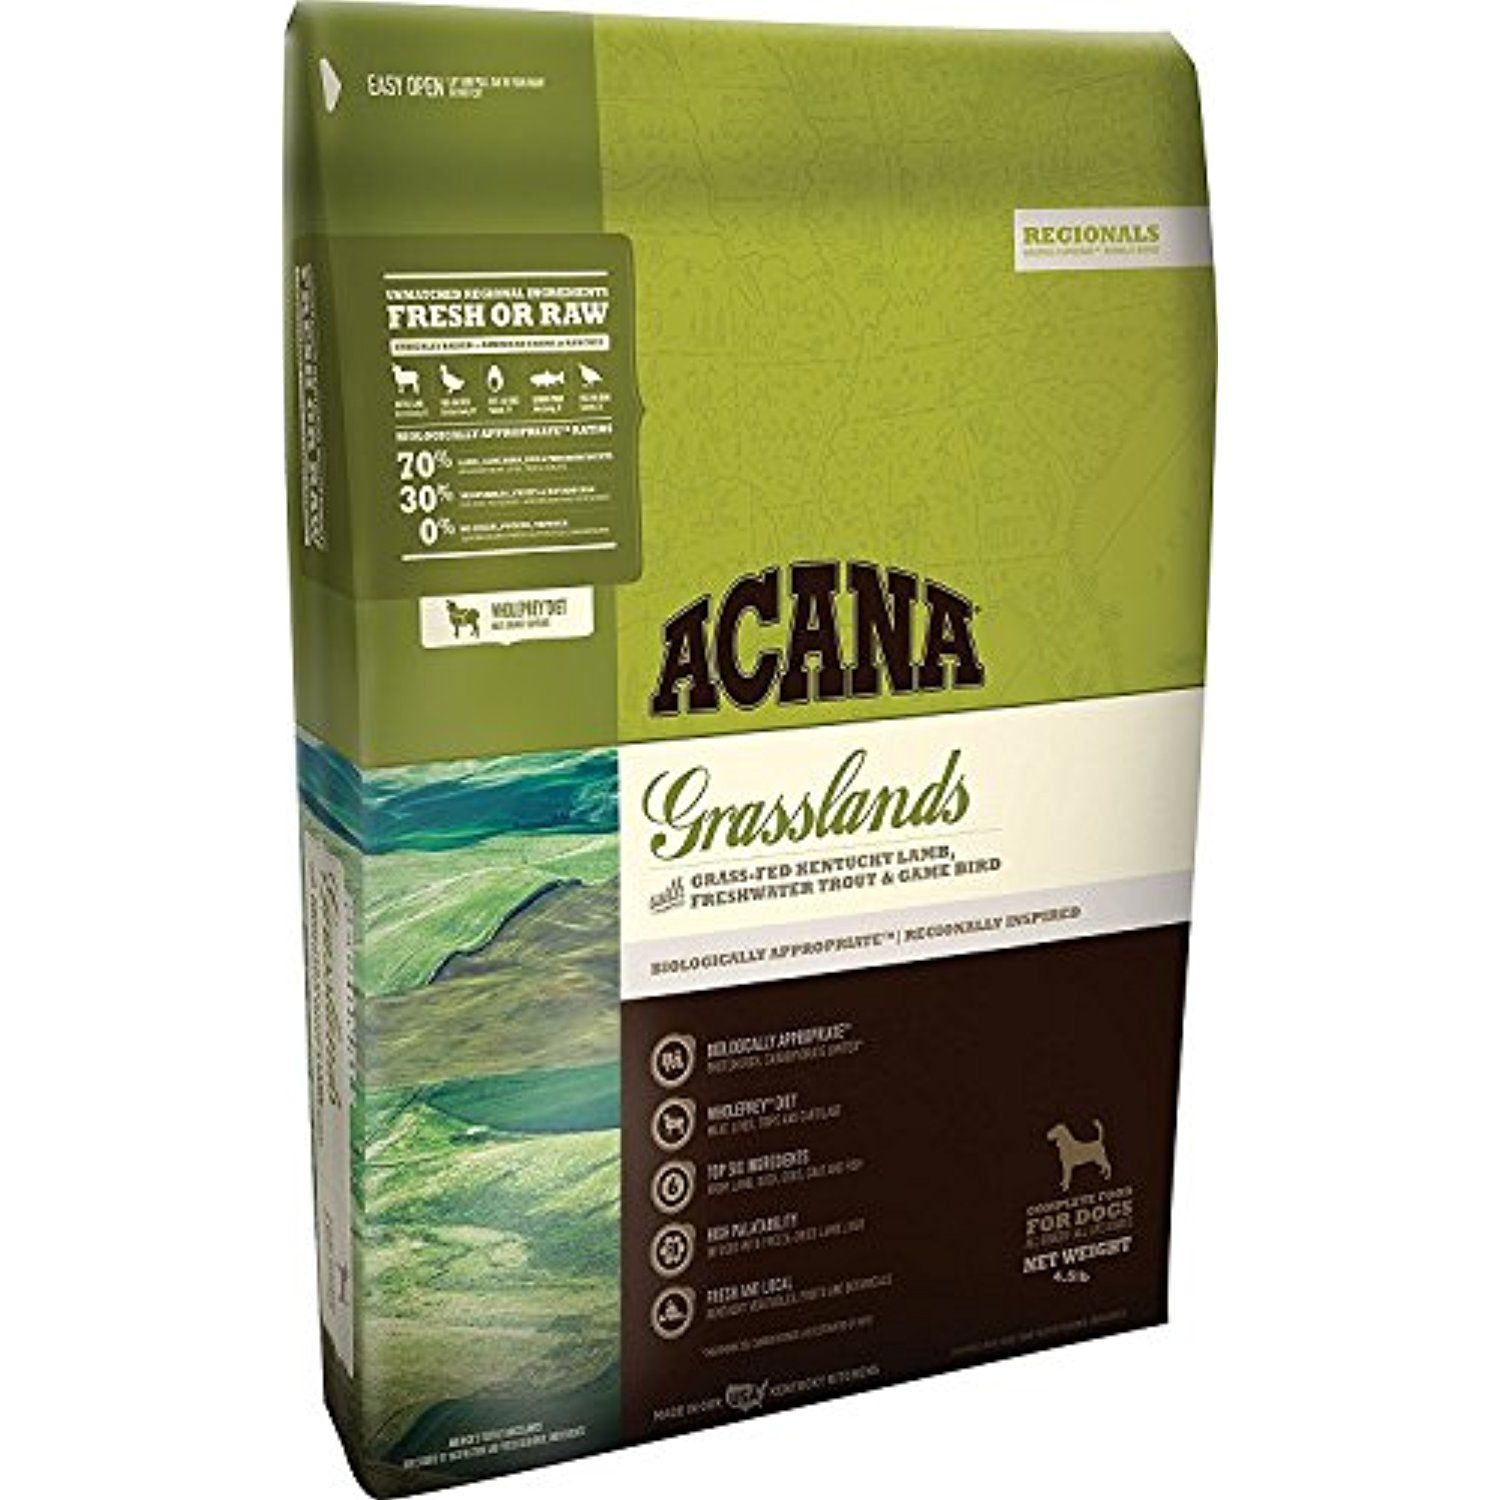 Acana Regionals Grasslands For Dogs 4 5lbs You Can Visit The